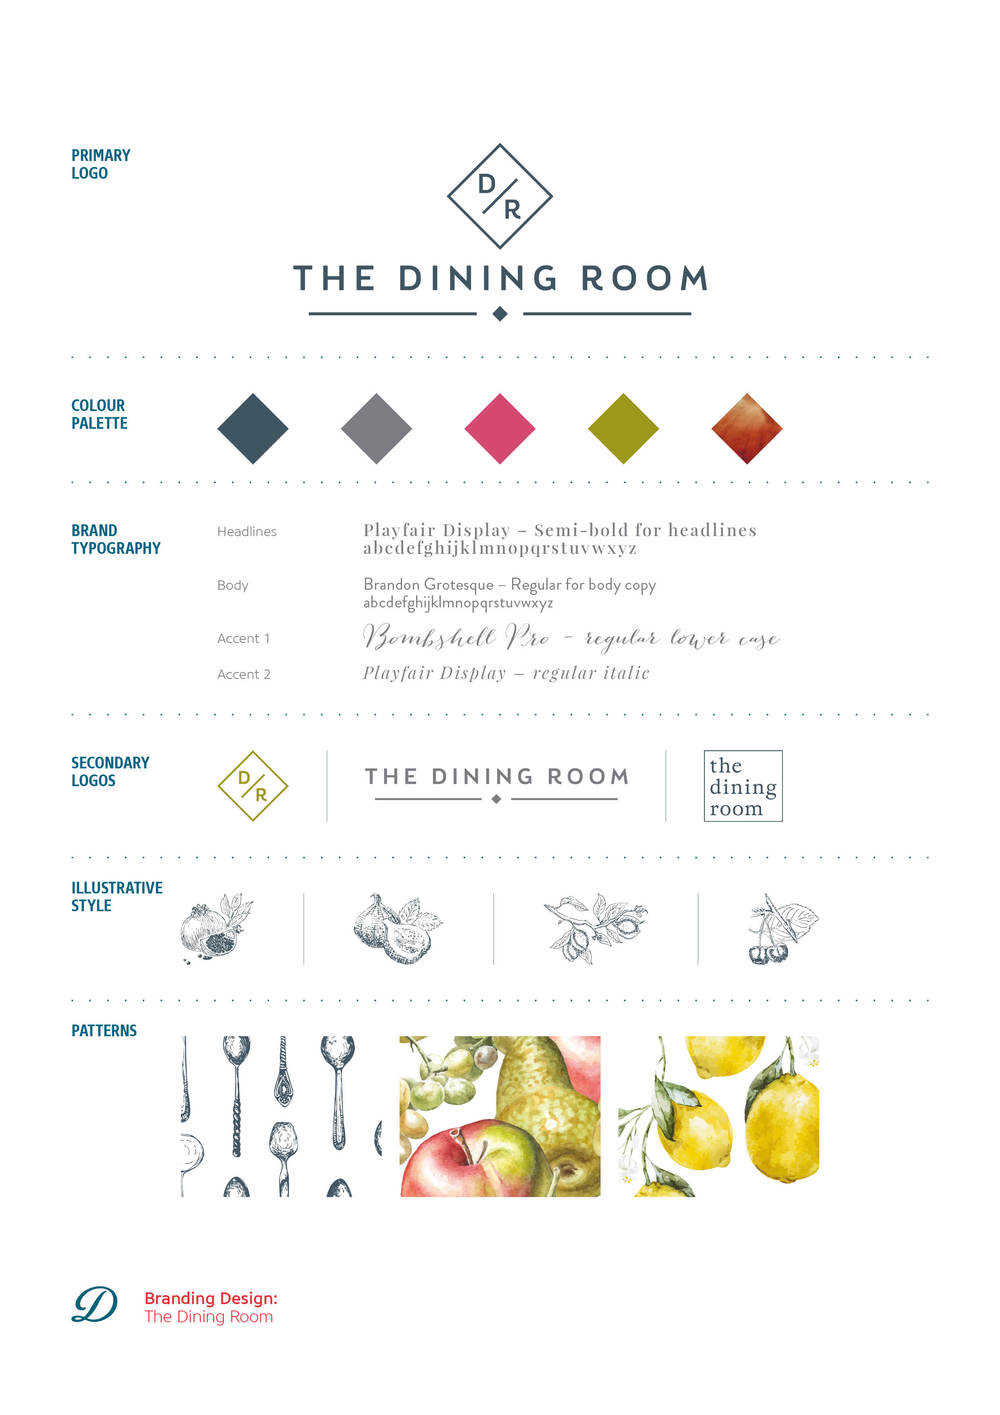 Dining Room PR brand board, branding for Tunbridge Wells PR agency by Ditto Creative, branding agency Kent